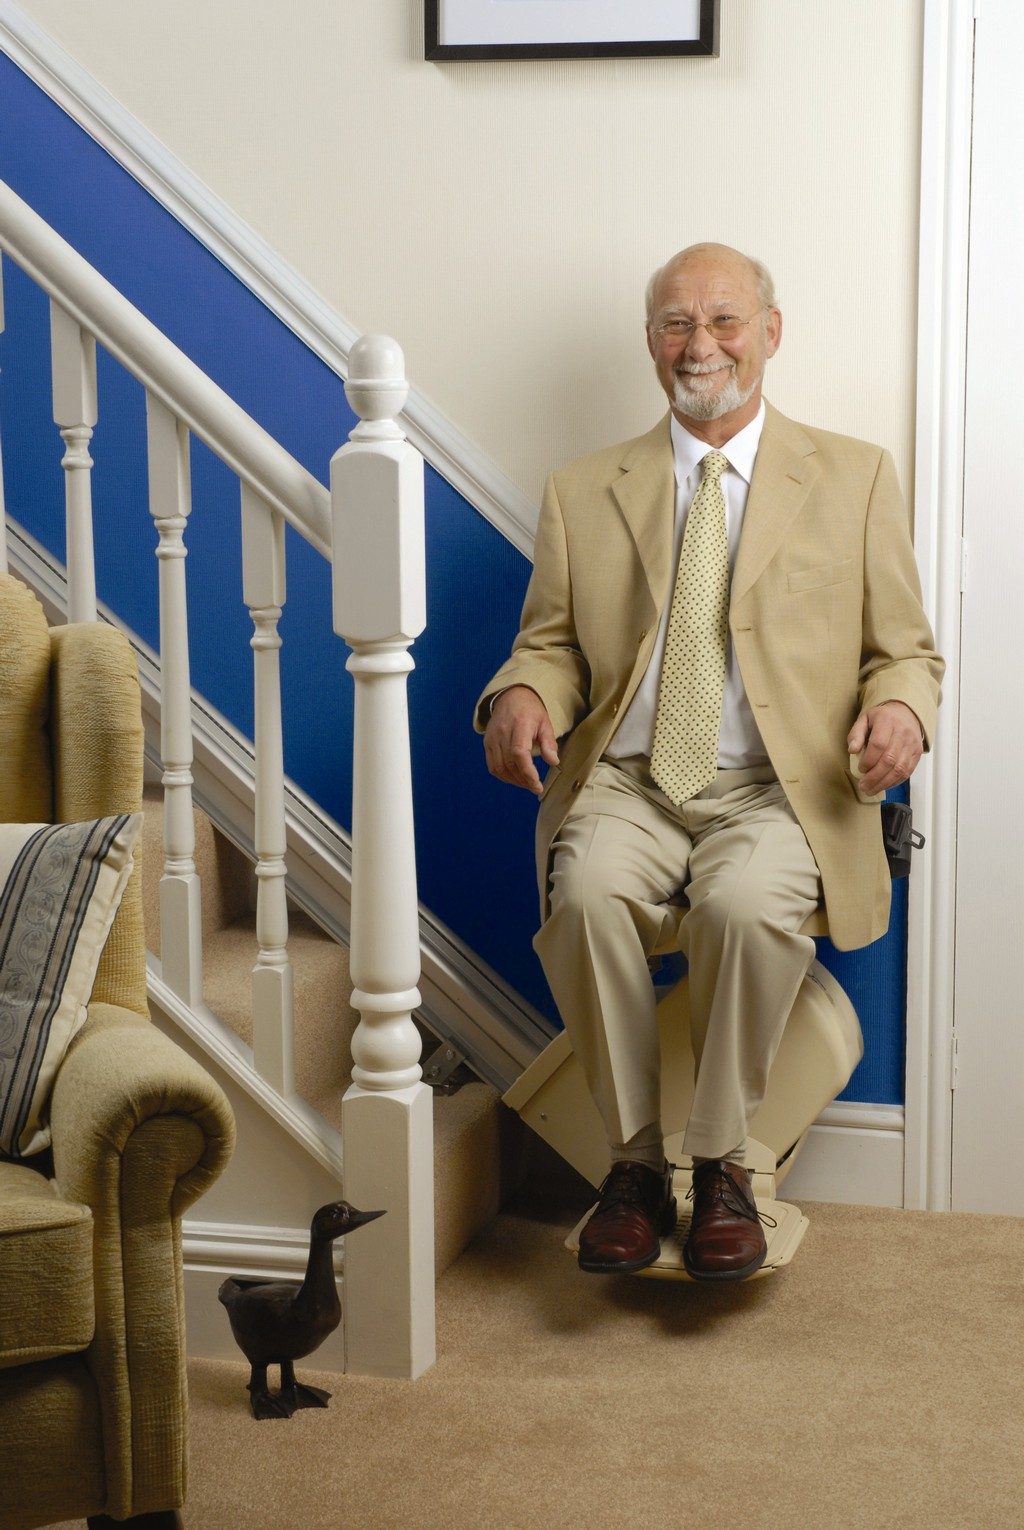 420 stairlift, acorn stair lifts inc, summit stairlift, meditek bruno stairlifts comparisons